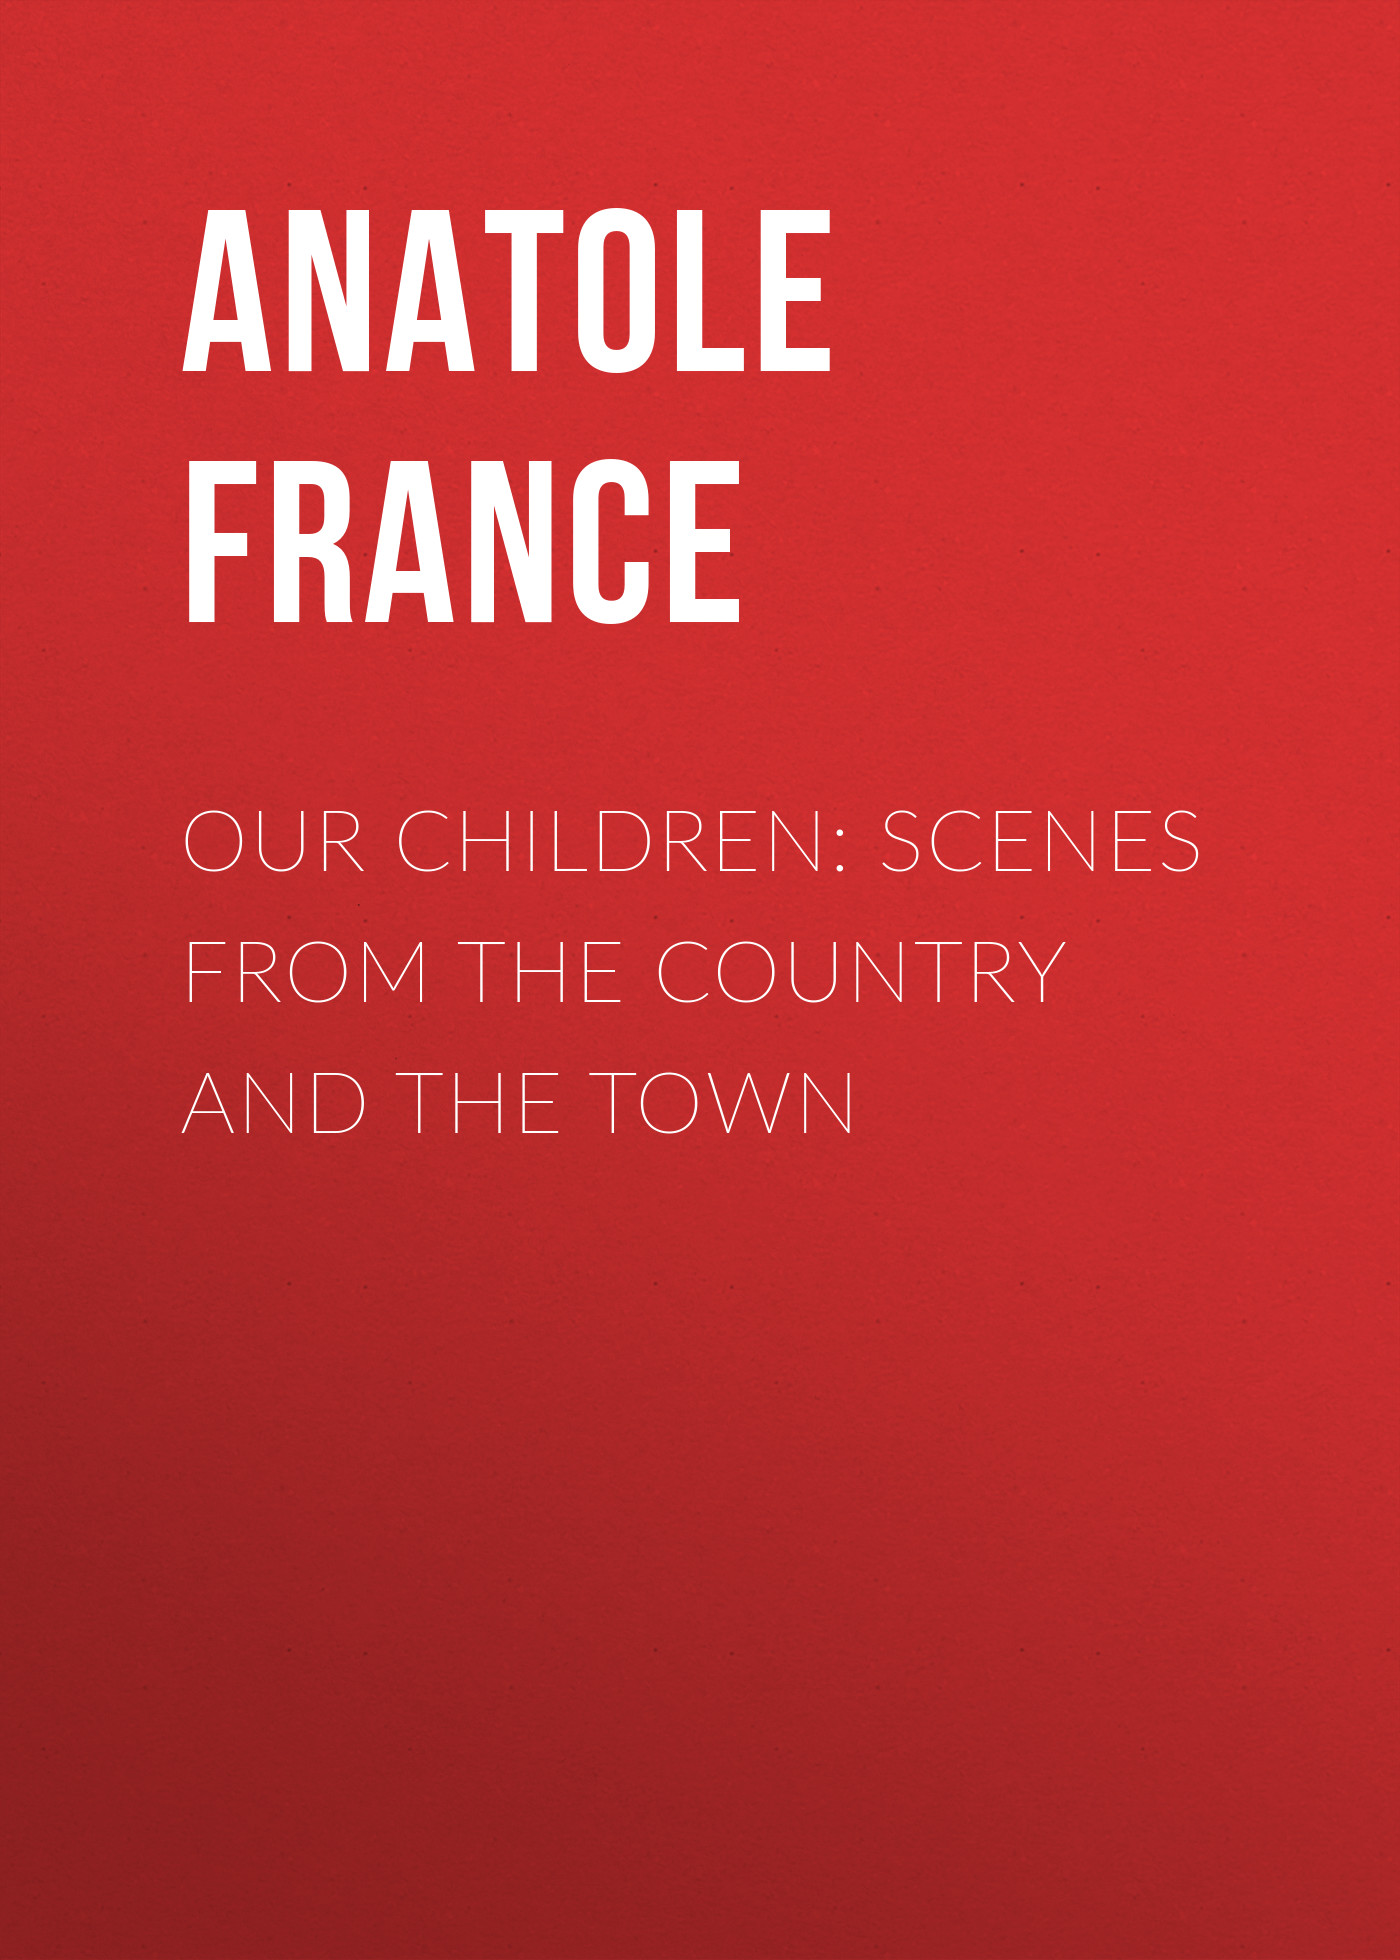 Anatole France Our Children: Scenes from the Country and the Town